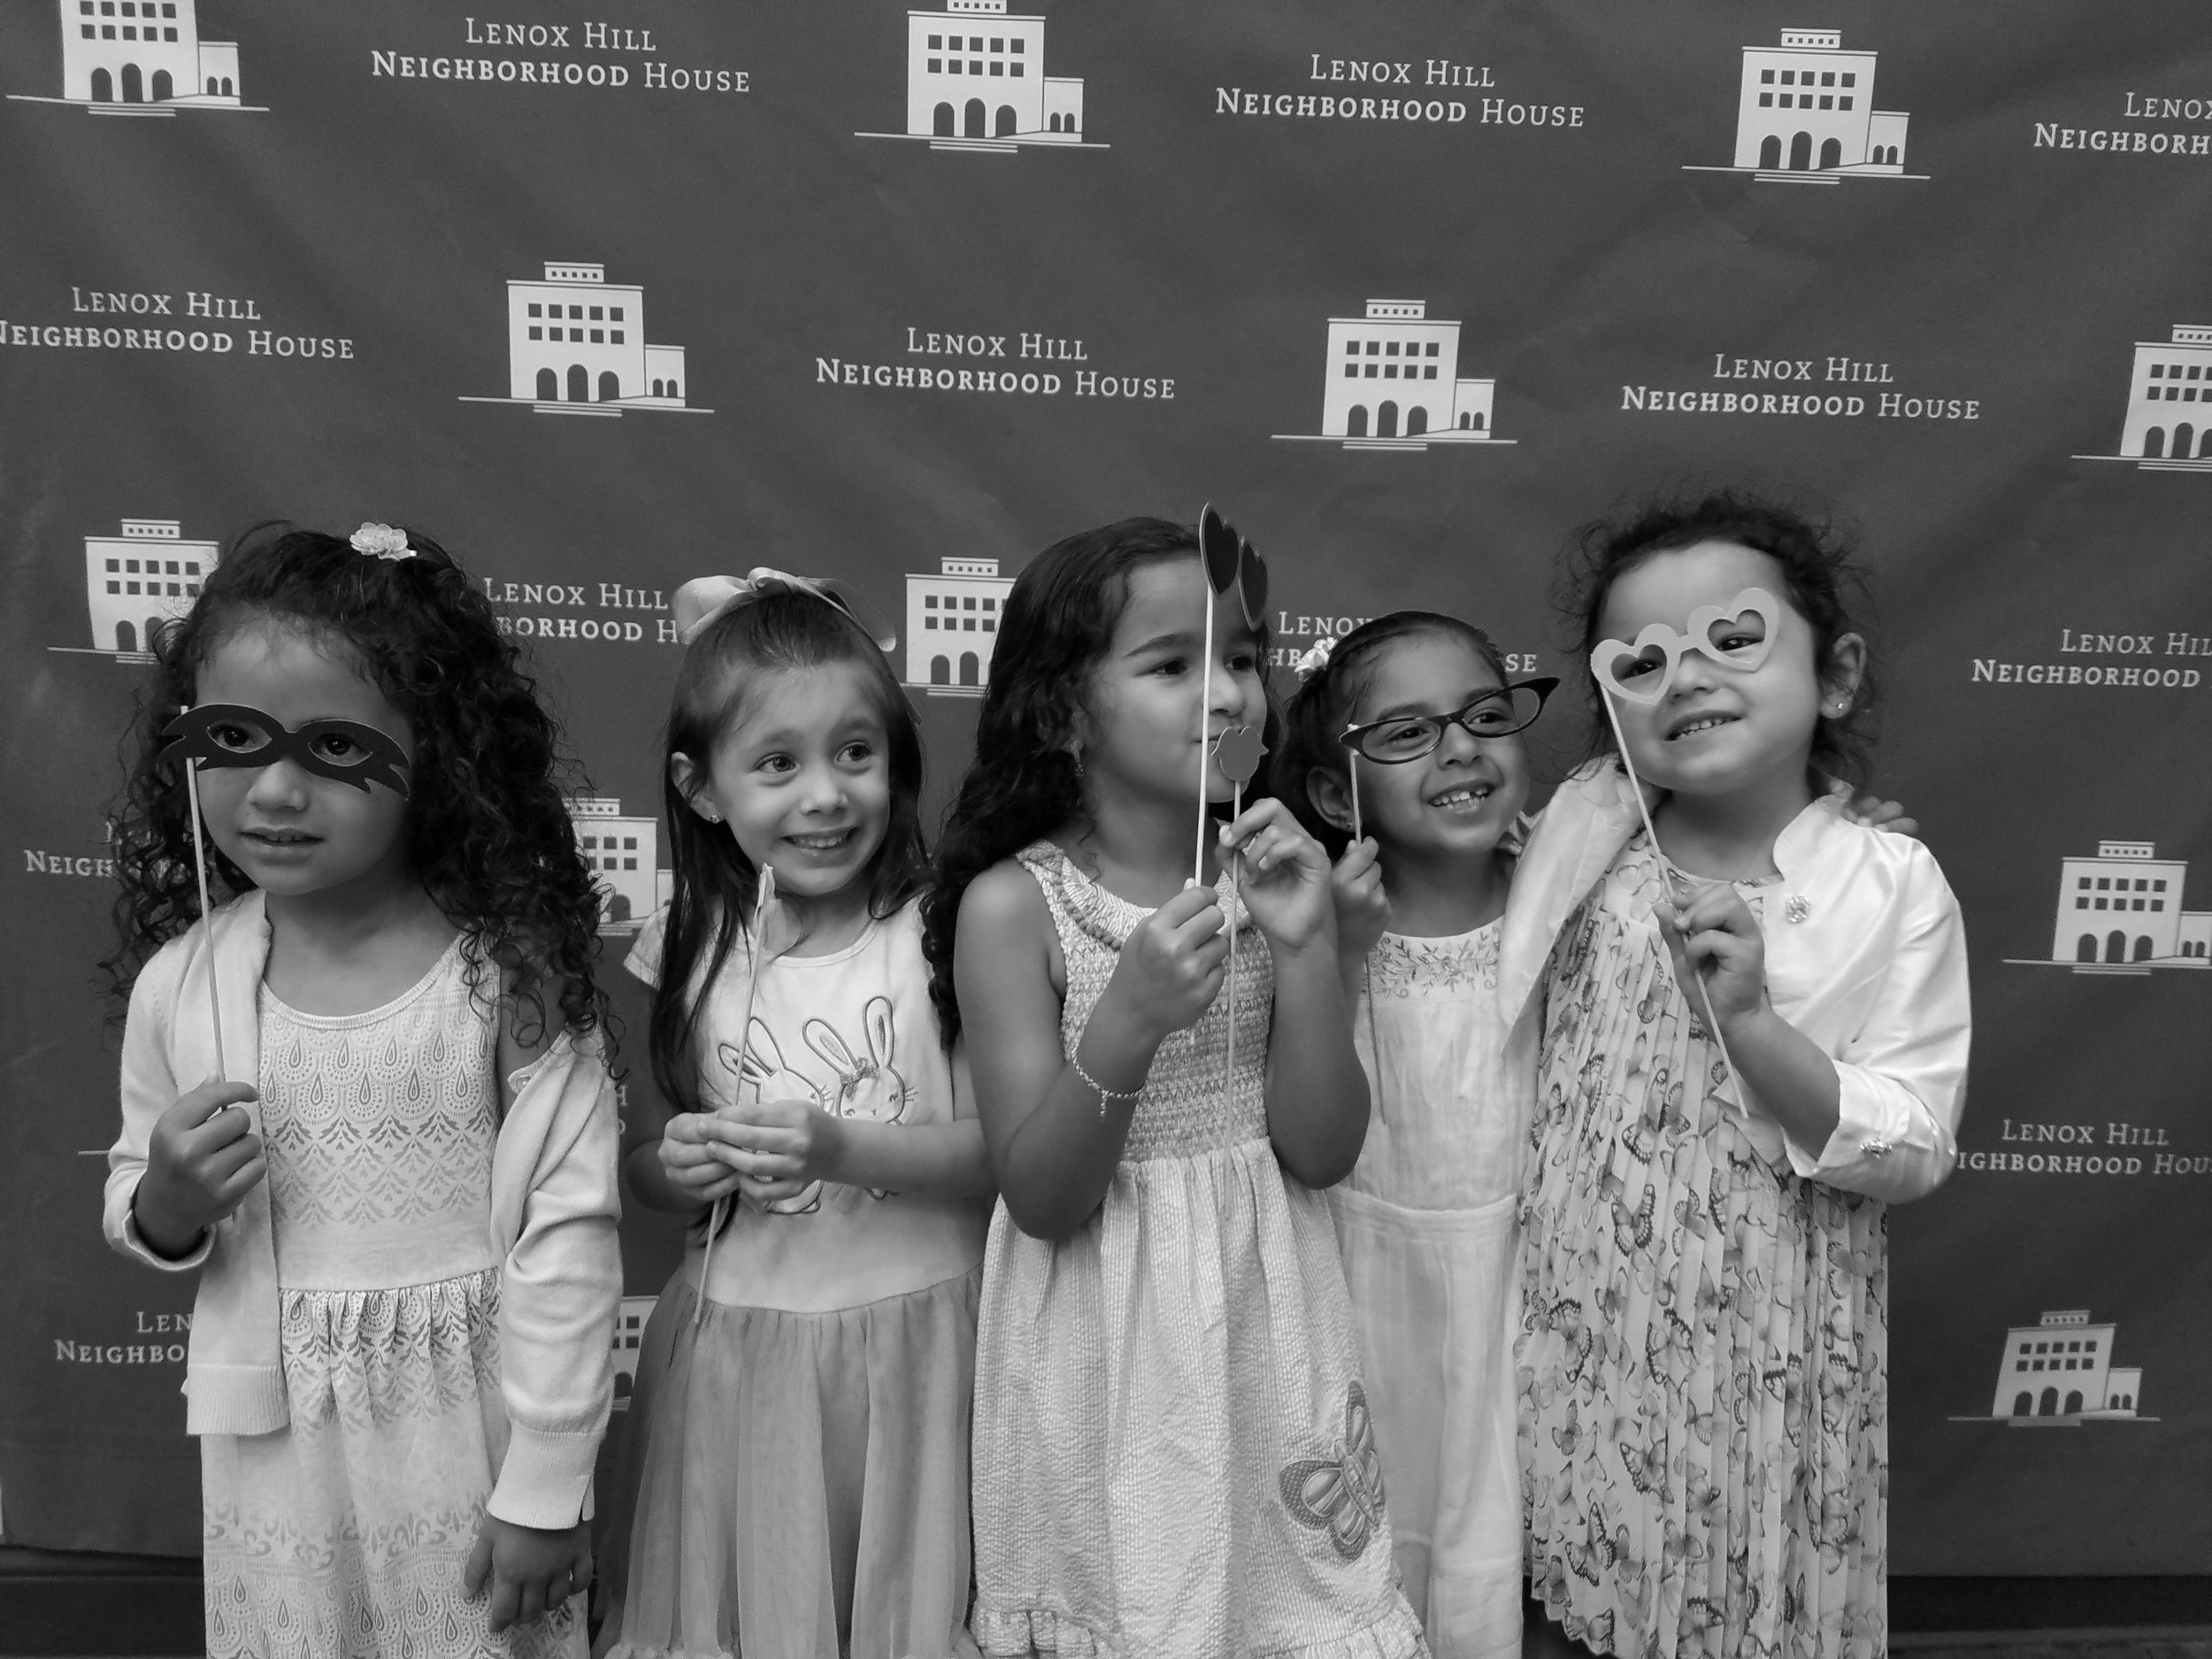 Group of Five Girls in Front of Neighborhood House Step and Repeat